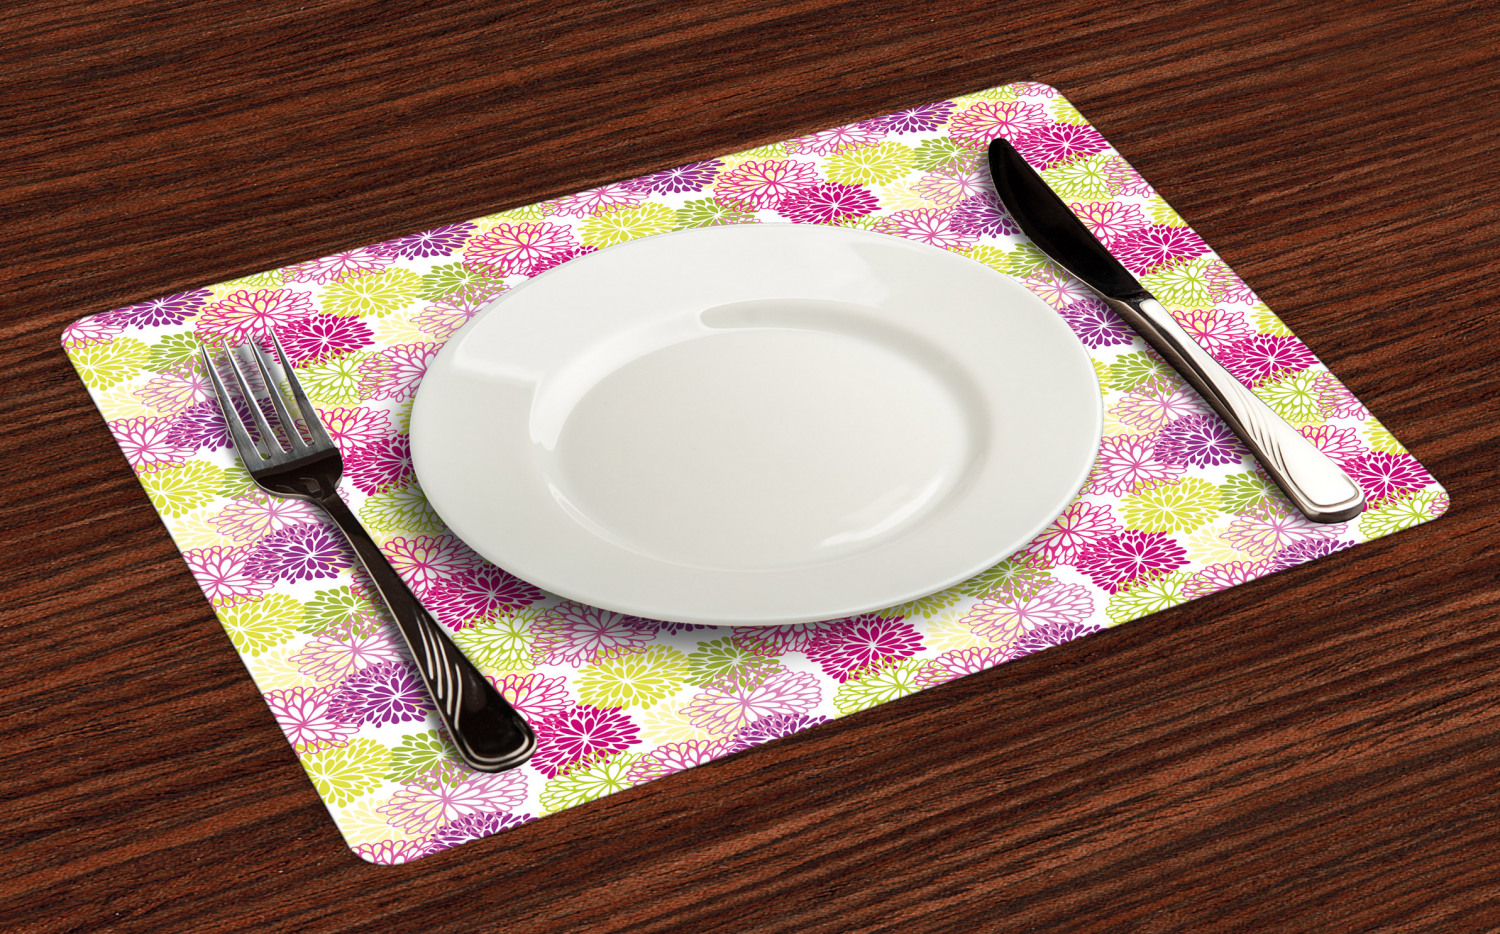 Ambesonne-Flower-Pattern-Placemat-Set-of-4-Fabric-Place-Mats-for-Table-Decor thumbnail 193